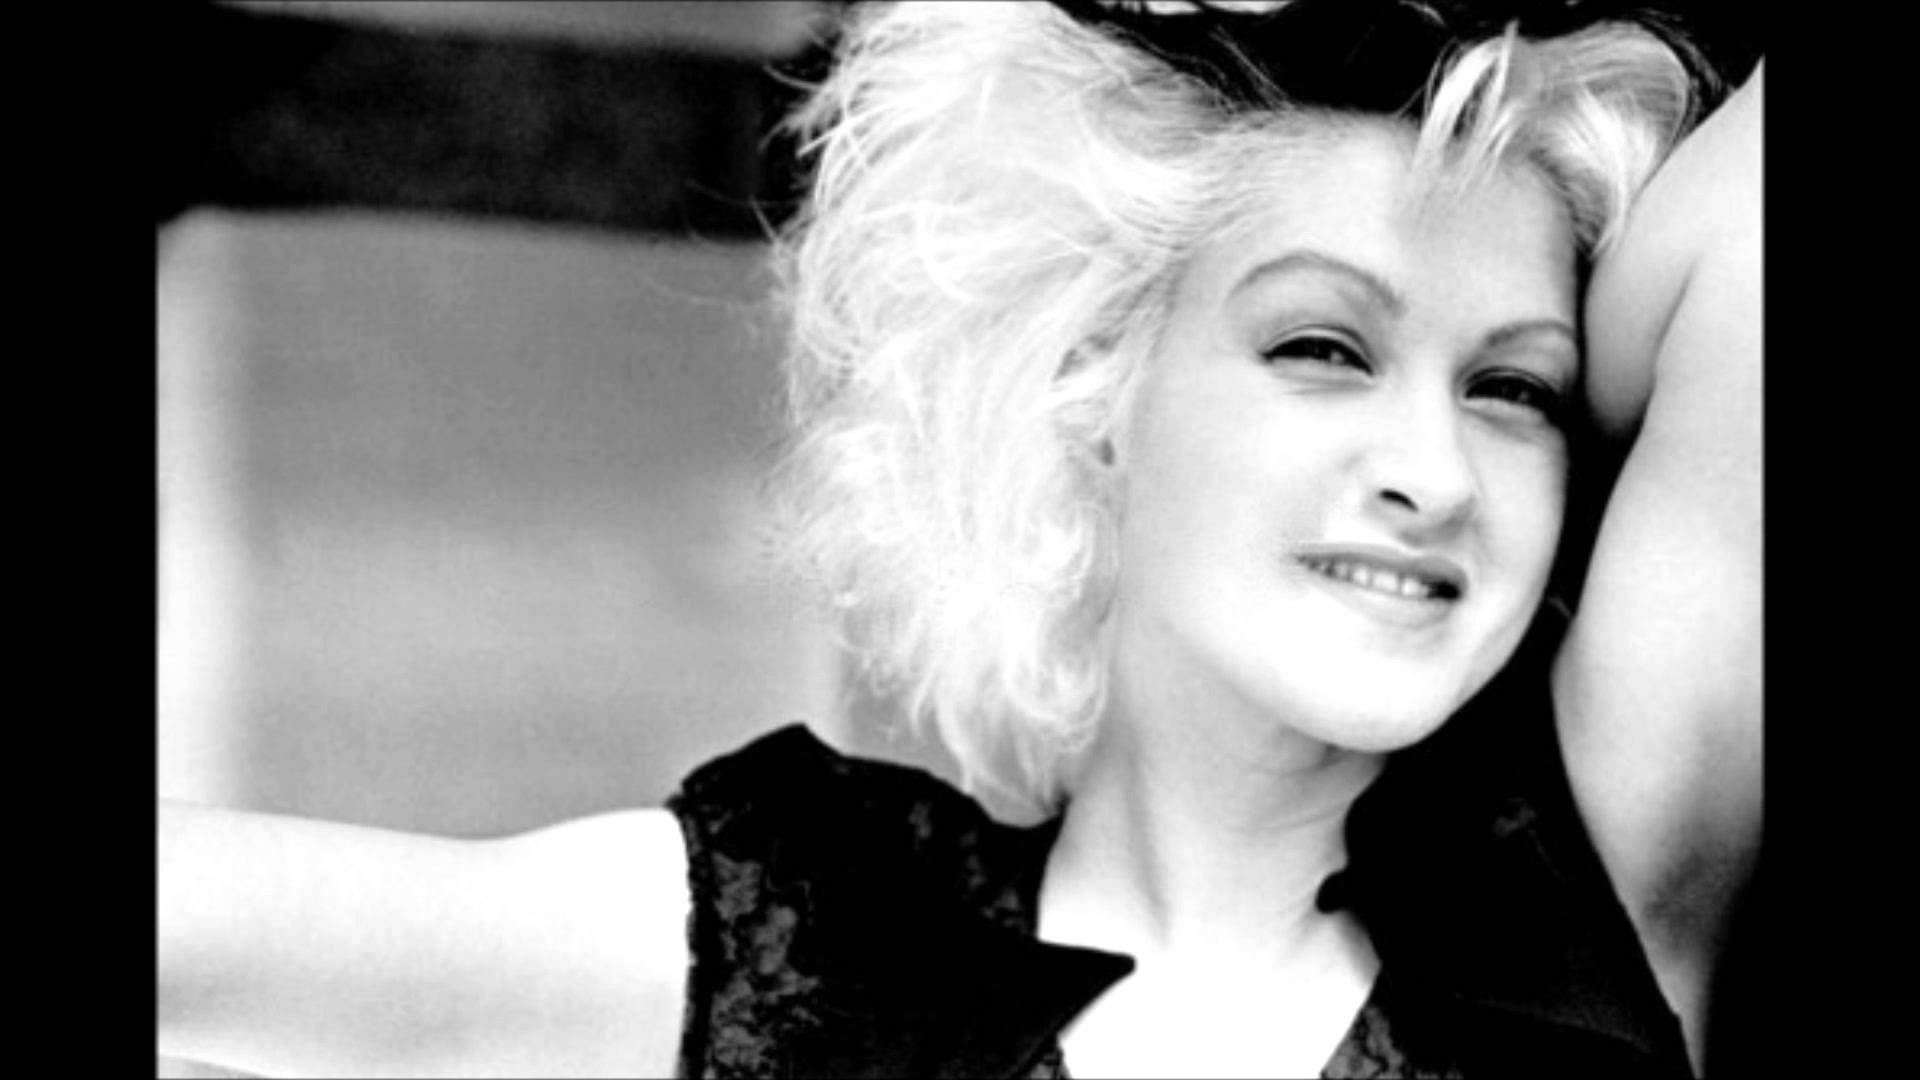 cyndi lauper black and white pictures - Google Search